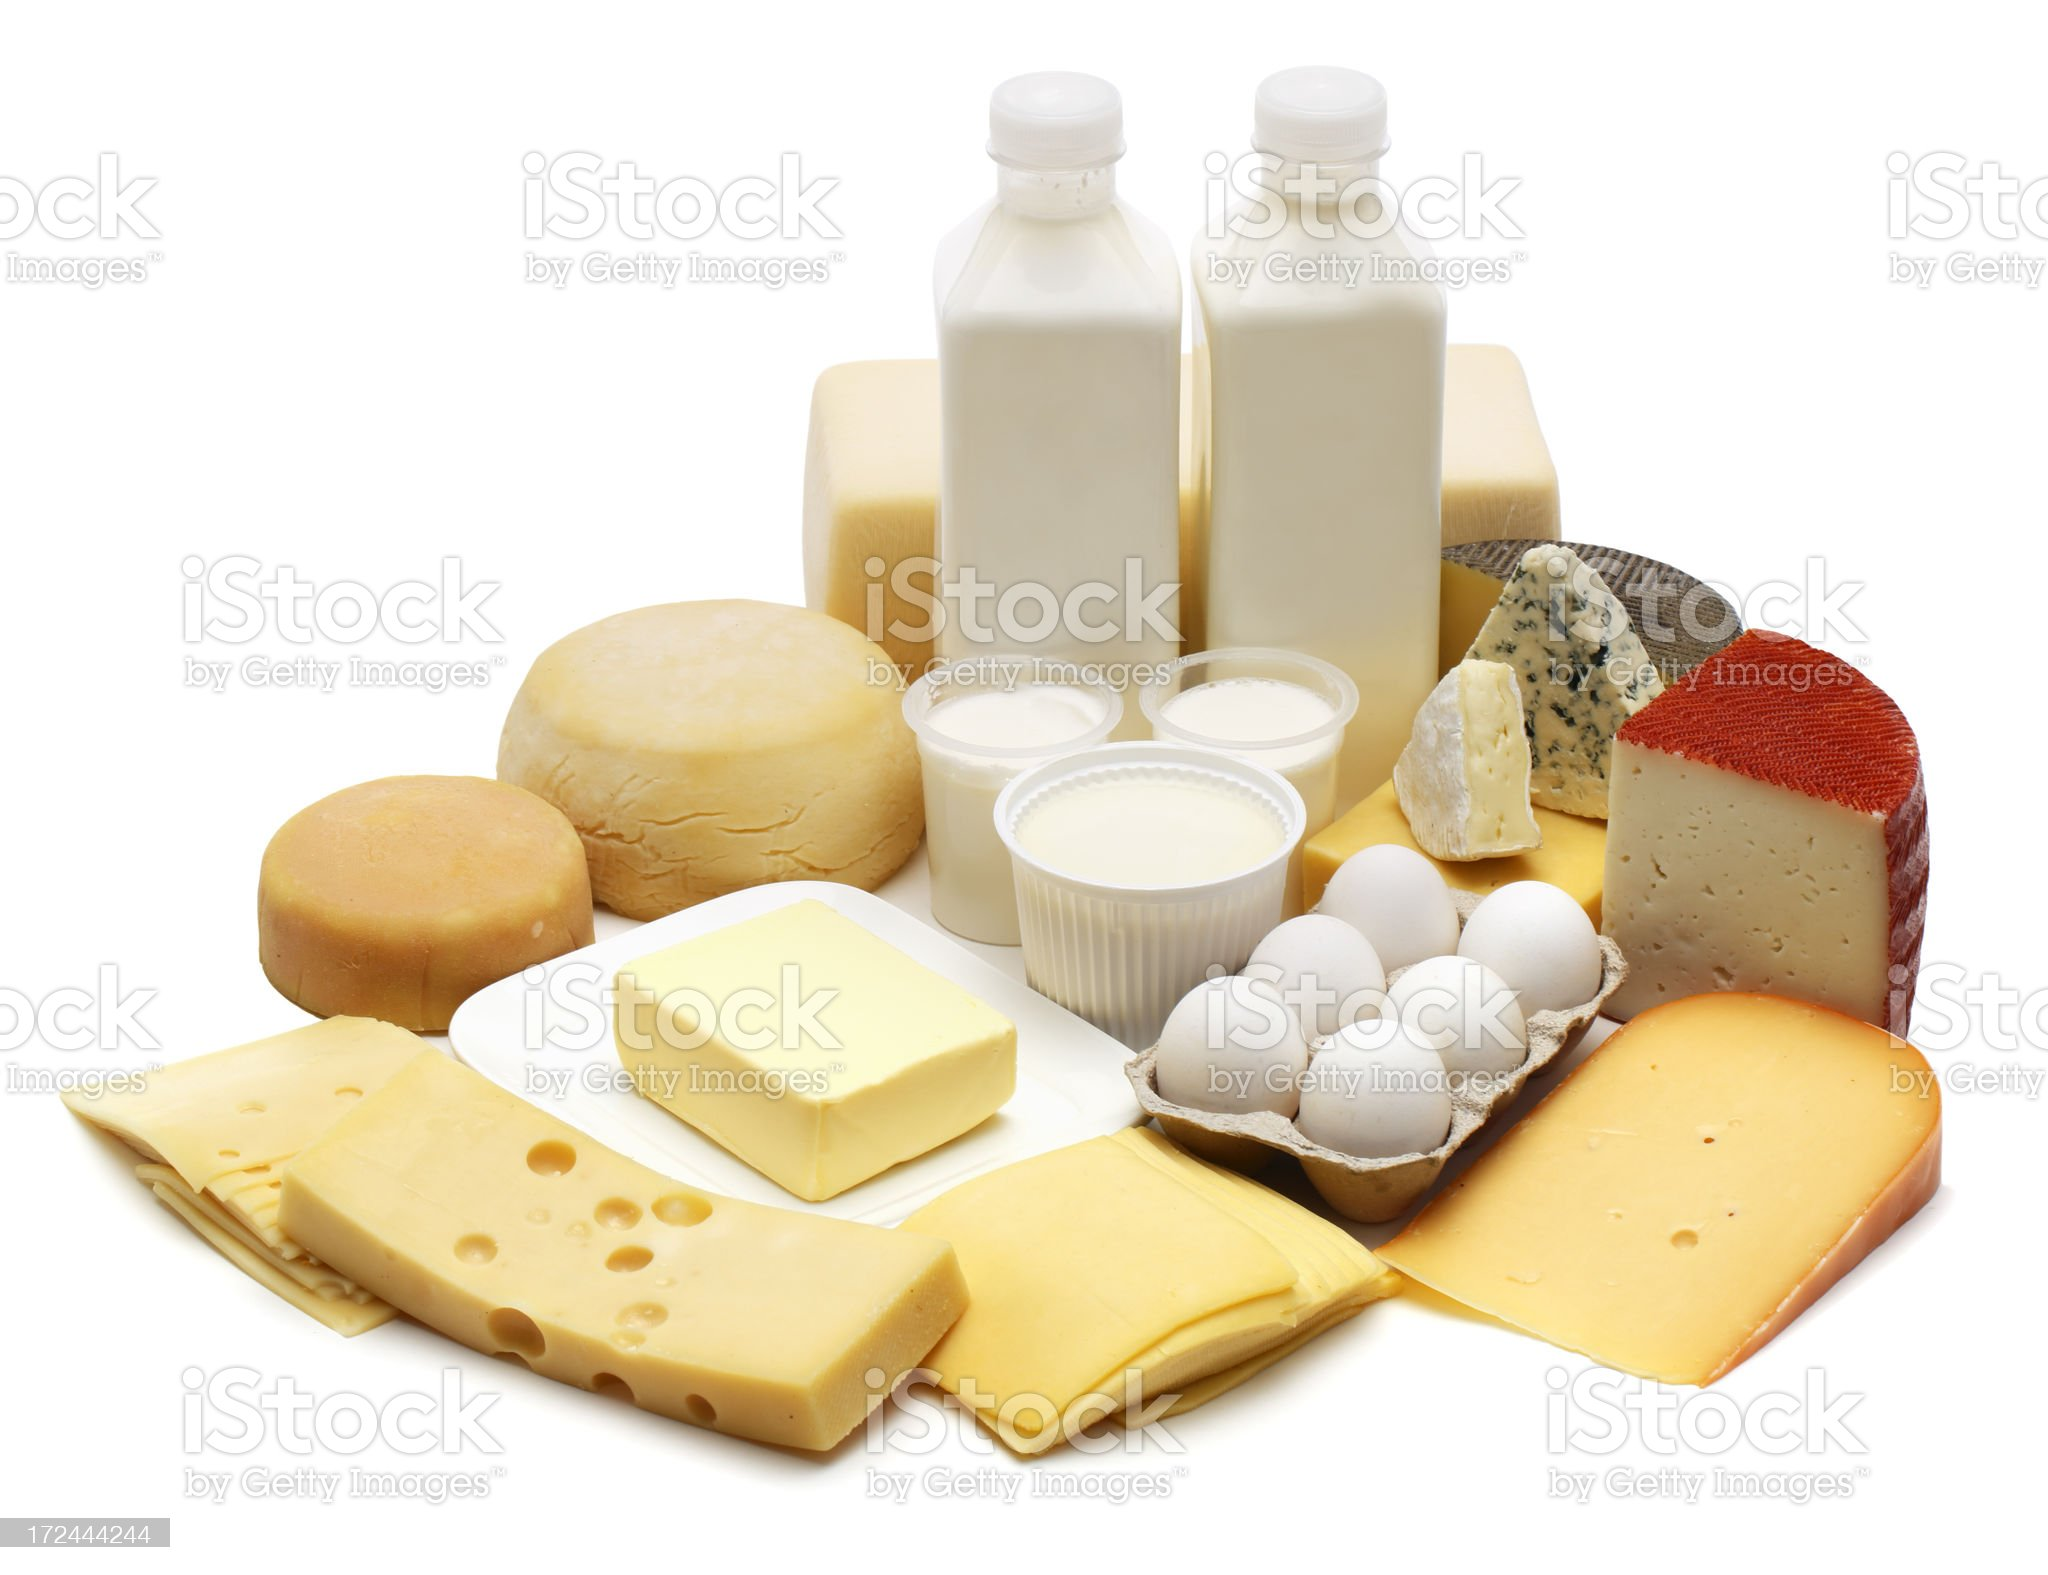 Dairies and eggs royalty-free stock photo